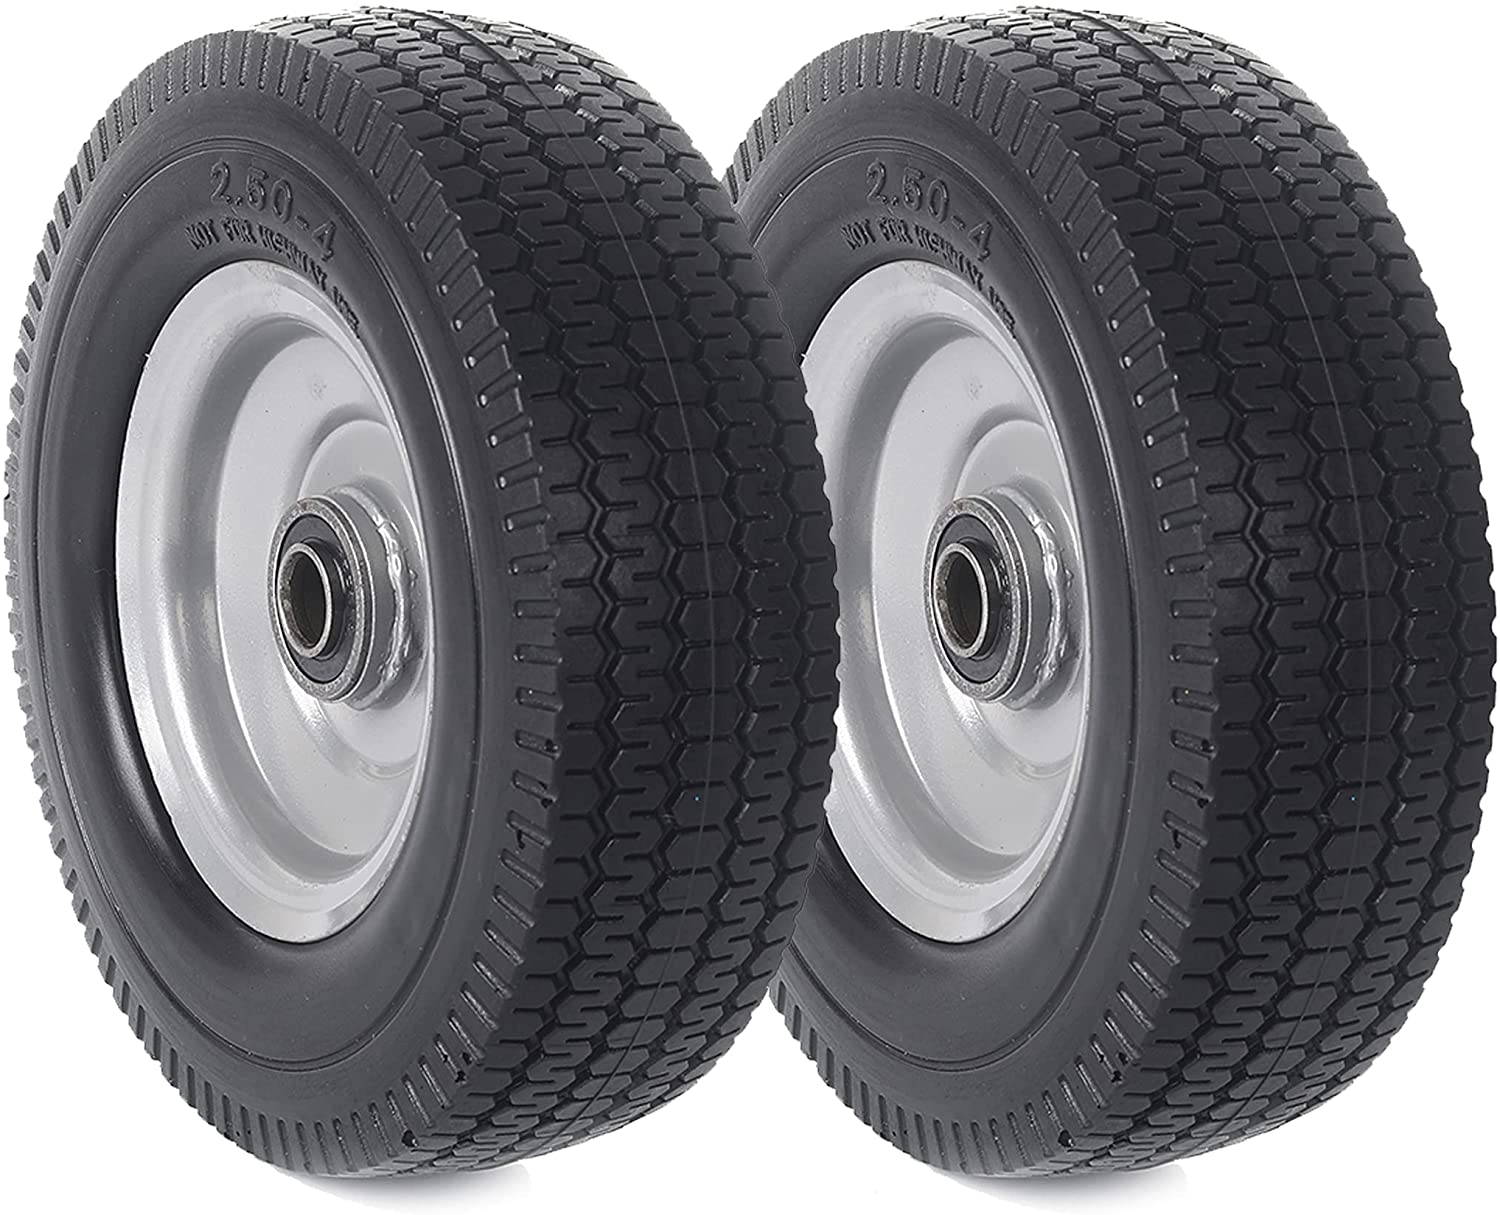 """(2-Pack) AR-PRO 2.50-4"""" Solid Rubber Tire and Wheel Assemblies - 8"""" Flat Free Tubeless Tires and Wheels for Utility Equipment - 5/8"""" Axle Bore Hole, 2 1/4"""" Offset Hub, and Double-Sealed Ball Bearings"""